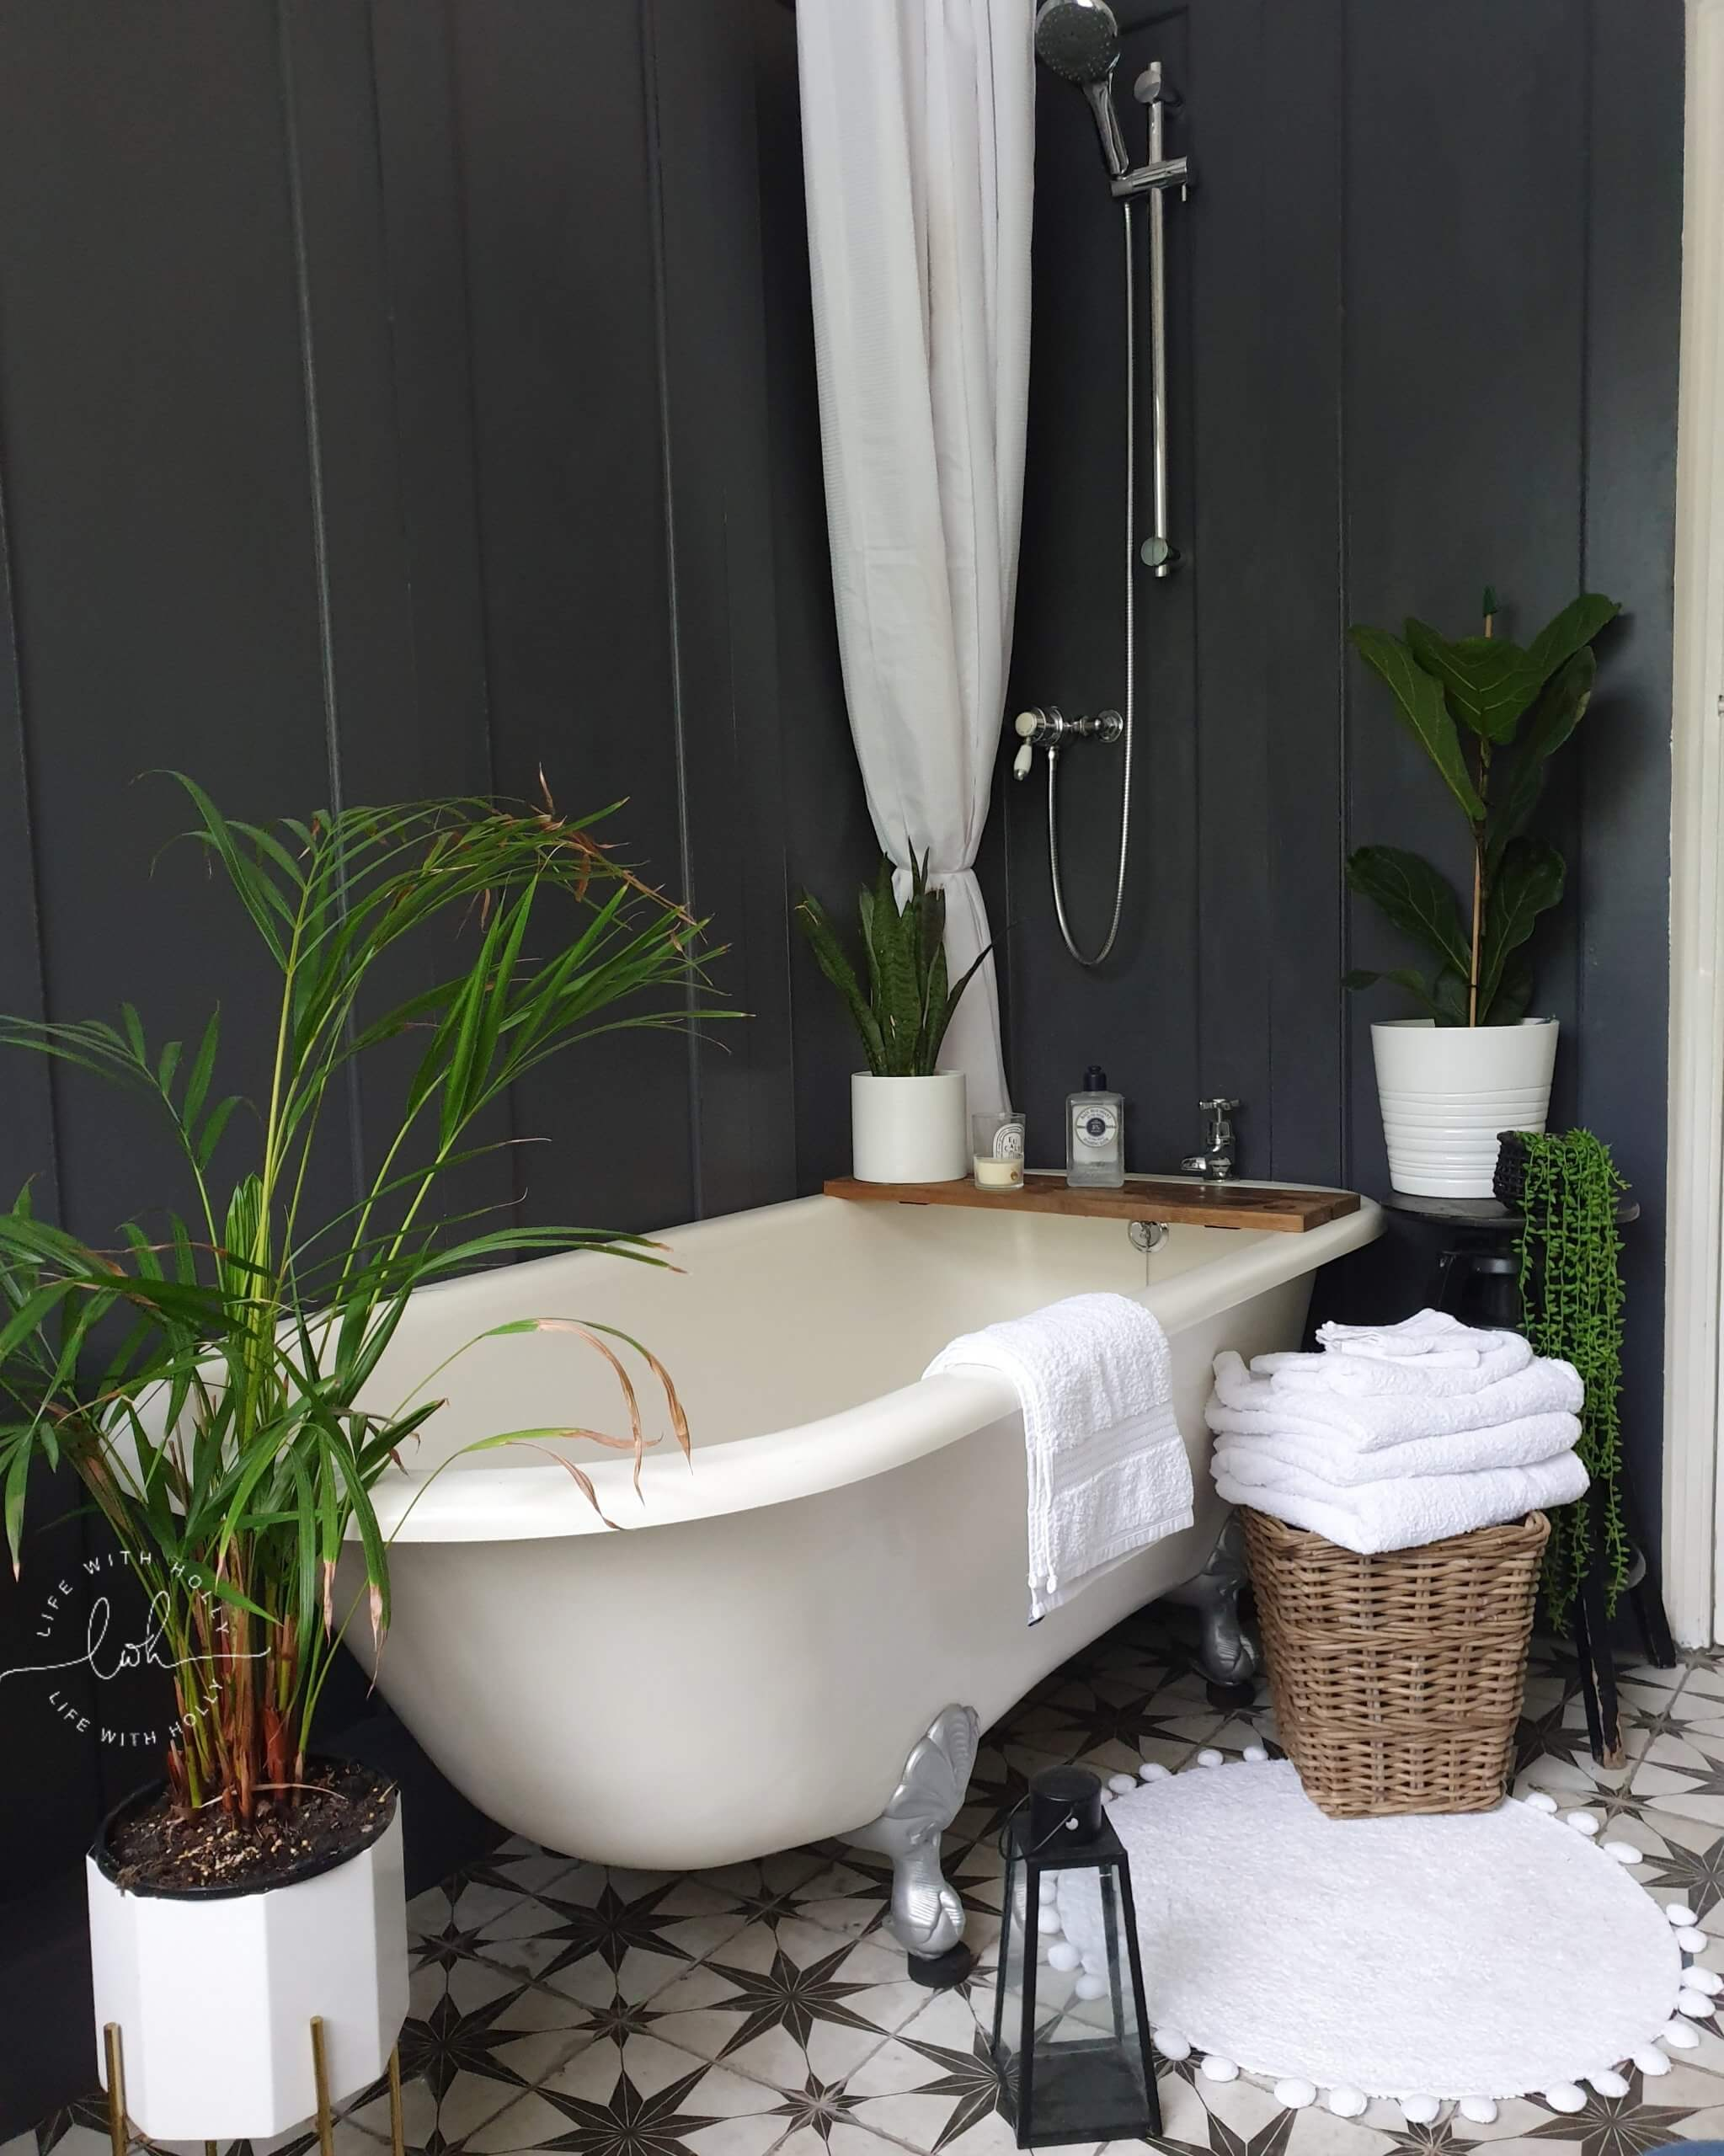 Modern Victorian Bathroom with Wood Panelling in Railings and Rolltop Bath by Life with Holly 2020 House Goals